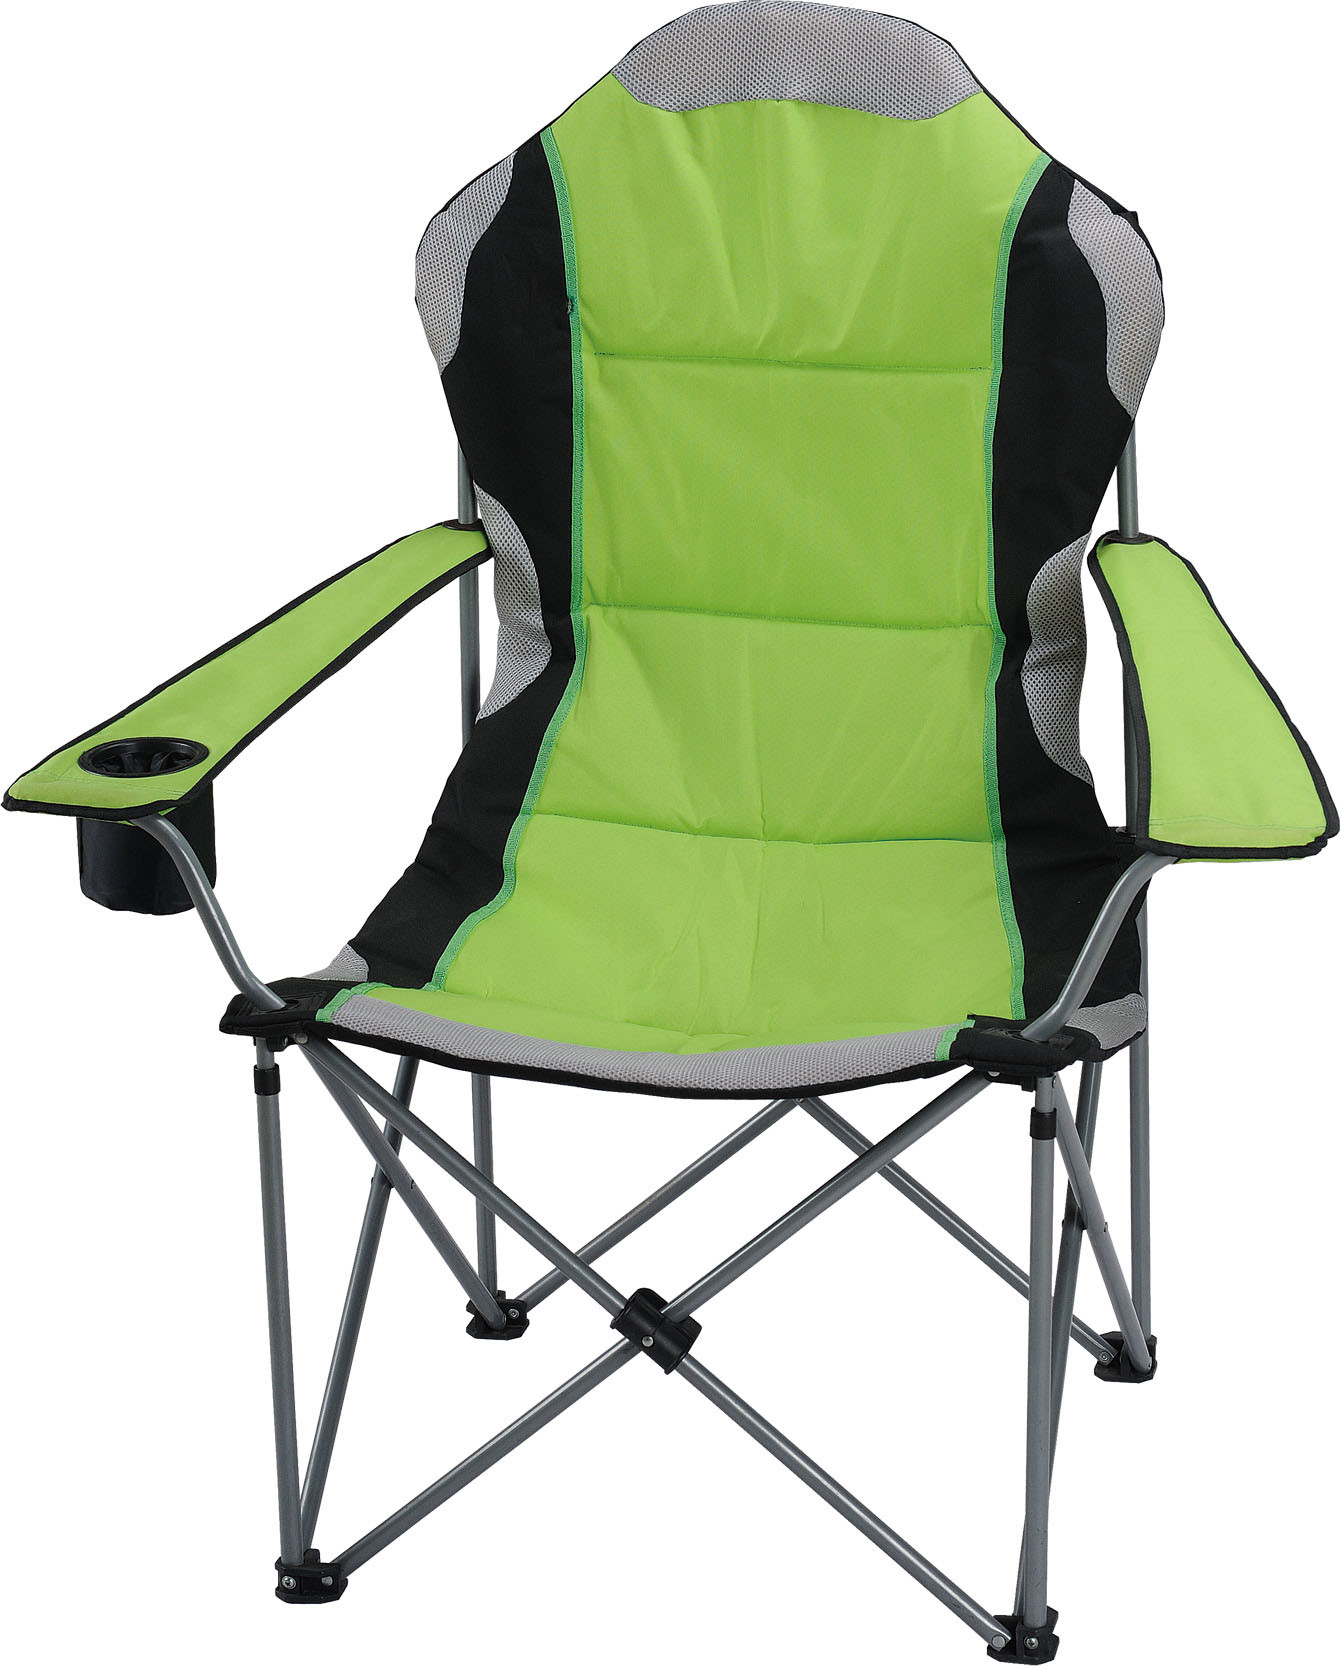 Luxury Folding Chair with Sponge Filling